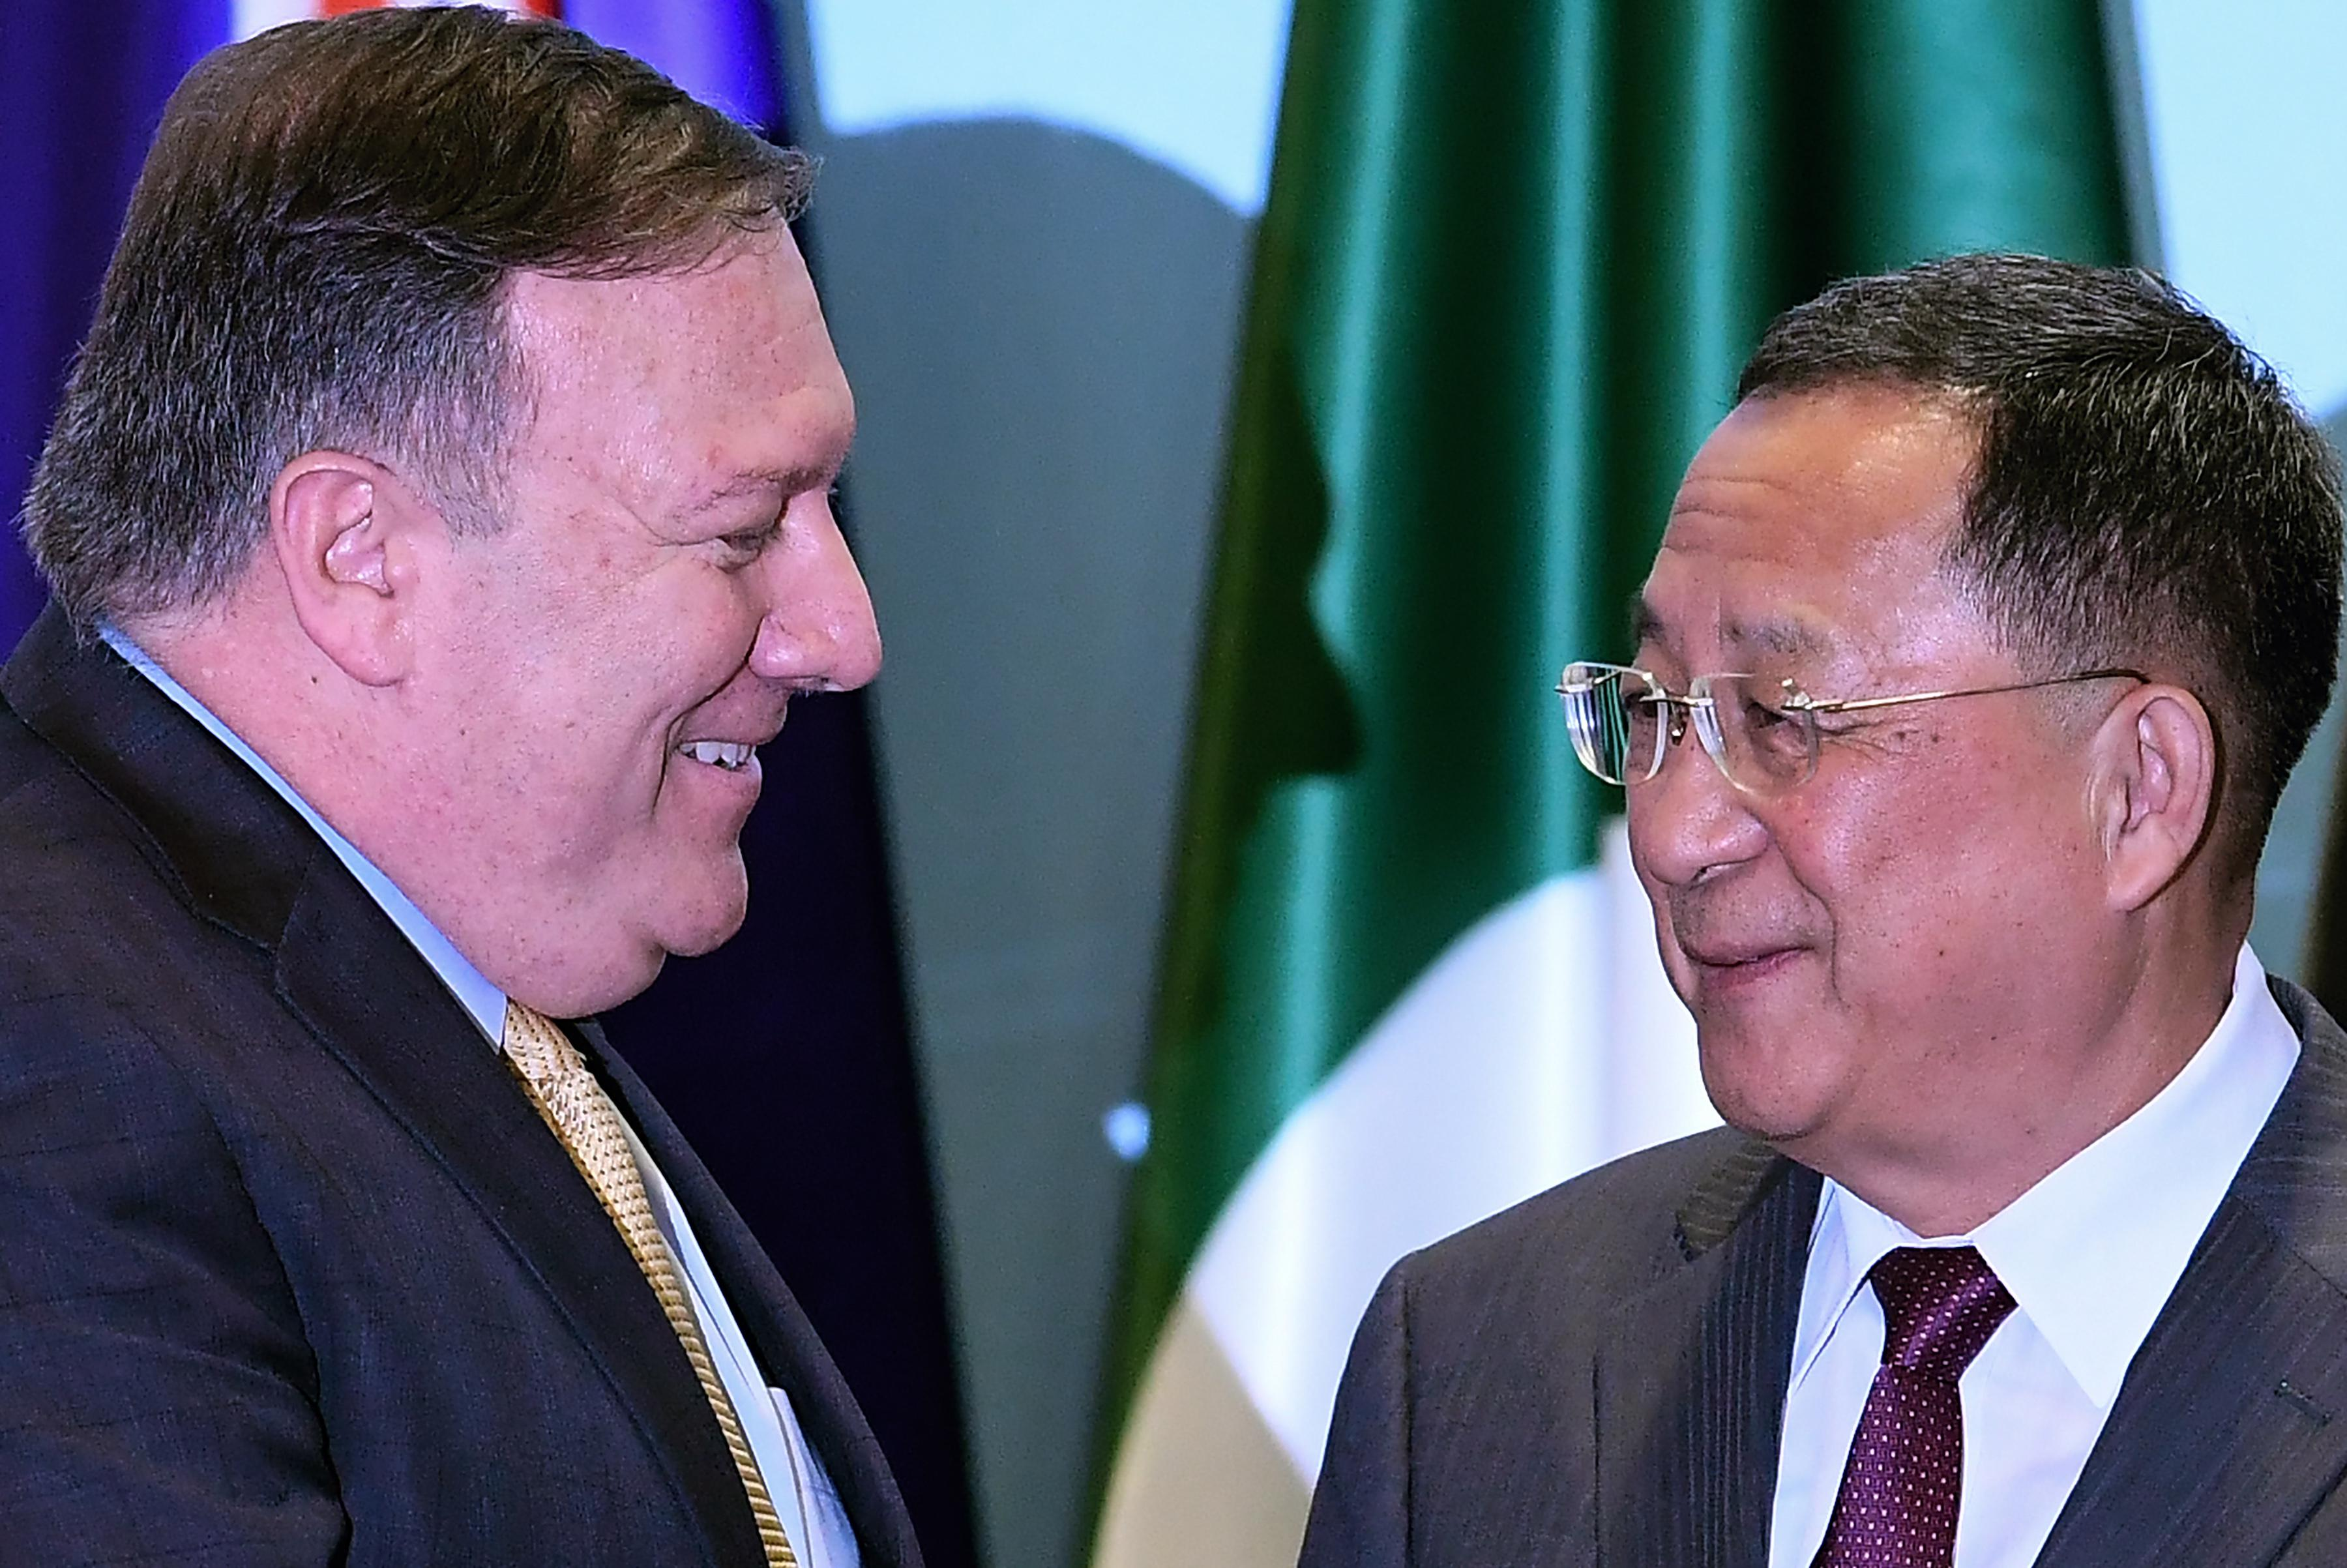 U.S. Secretary of State Mike Pompeo talks with North Korea's Foreign Minister Ri Yong Ho as they arrive for a group photo at the ASEAN Regional Forum in Singapore on August 4, 2018.